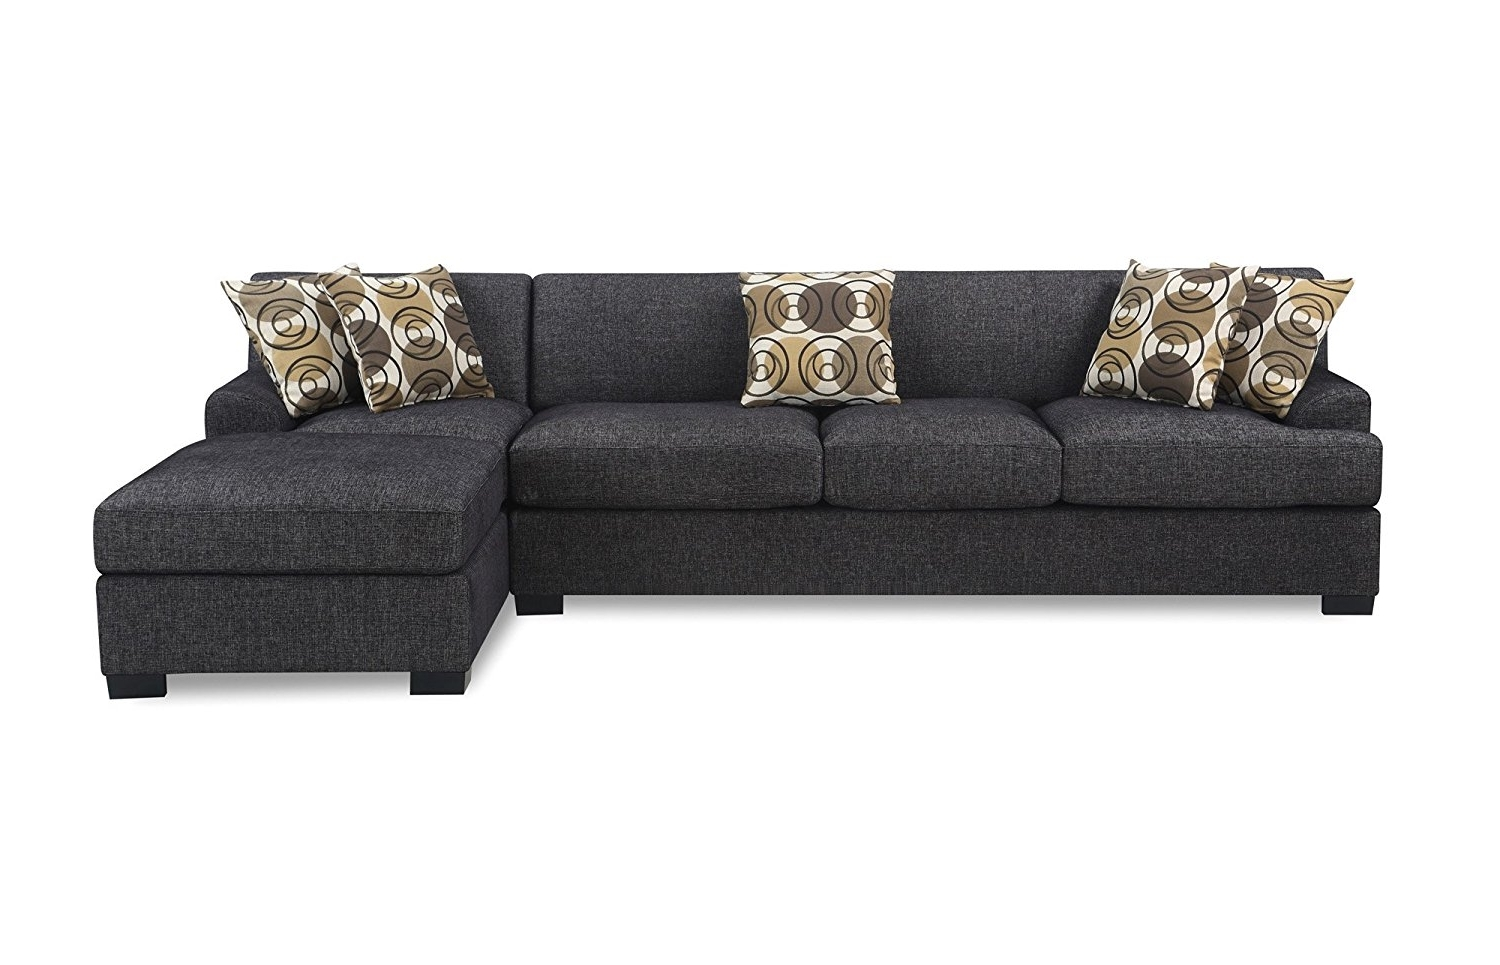 Amazon: Bobkona Benford 2 Piece Chaise Loveseat Sectional Sofa Regarding Most Up To Date Sectional Sofa Chaises (View 7 of 15)